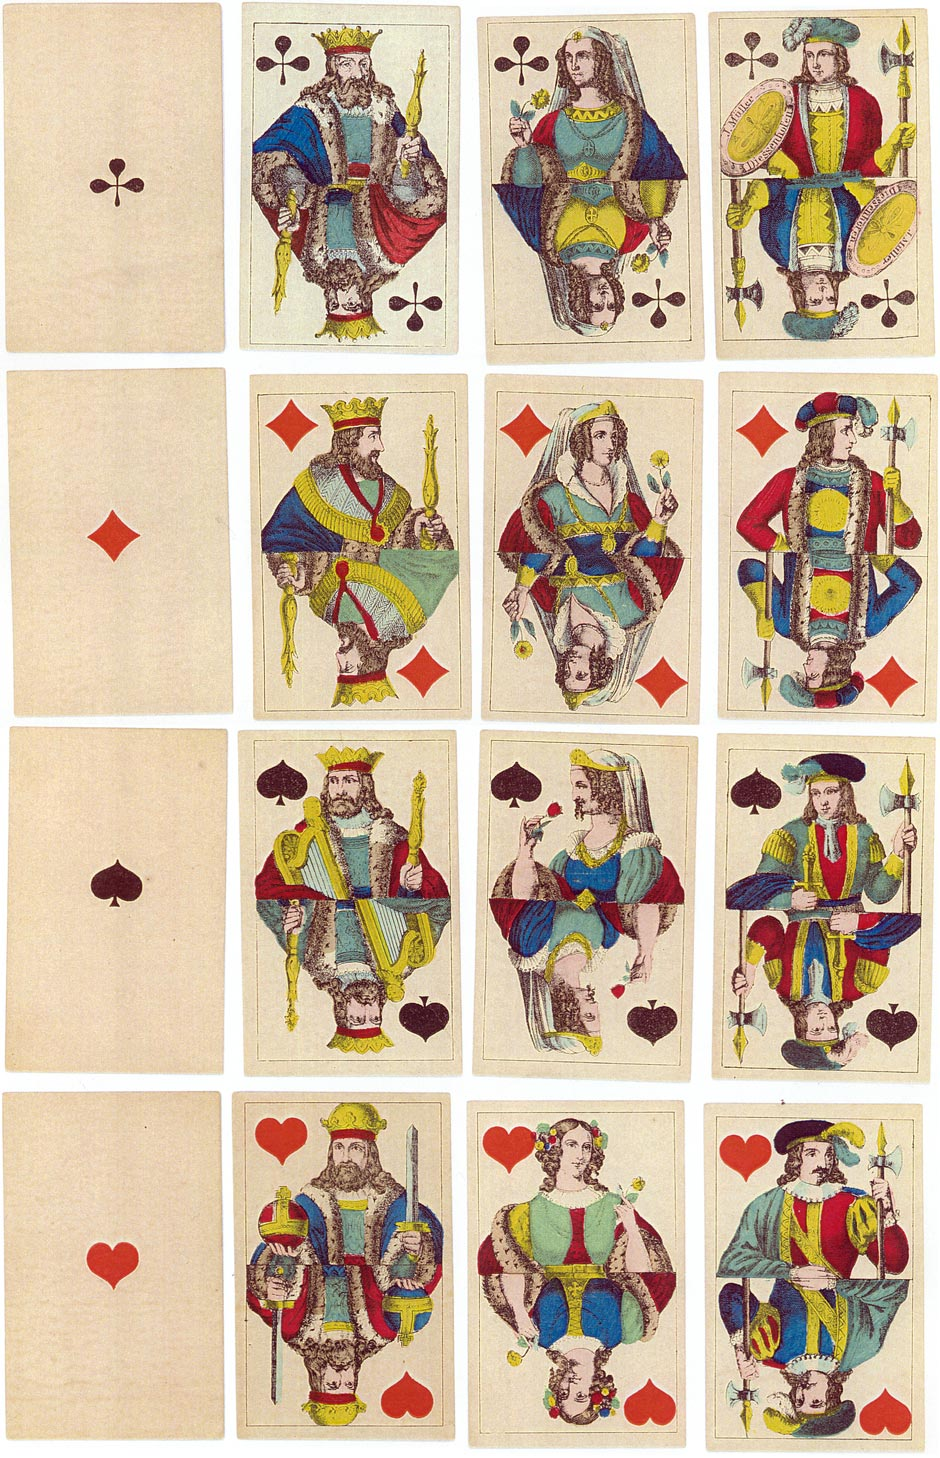 Playing Cards made by J. Müller, Diessenhofen, c.1840-50